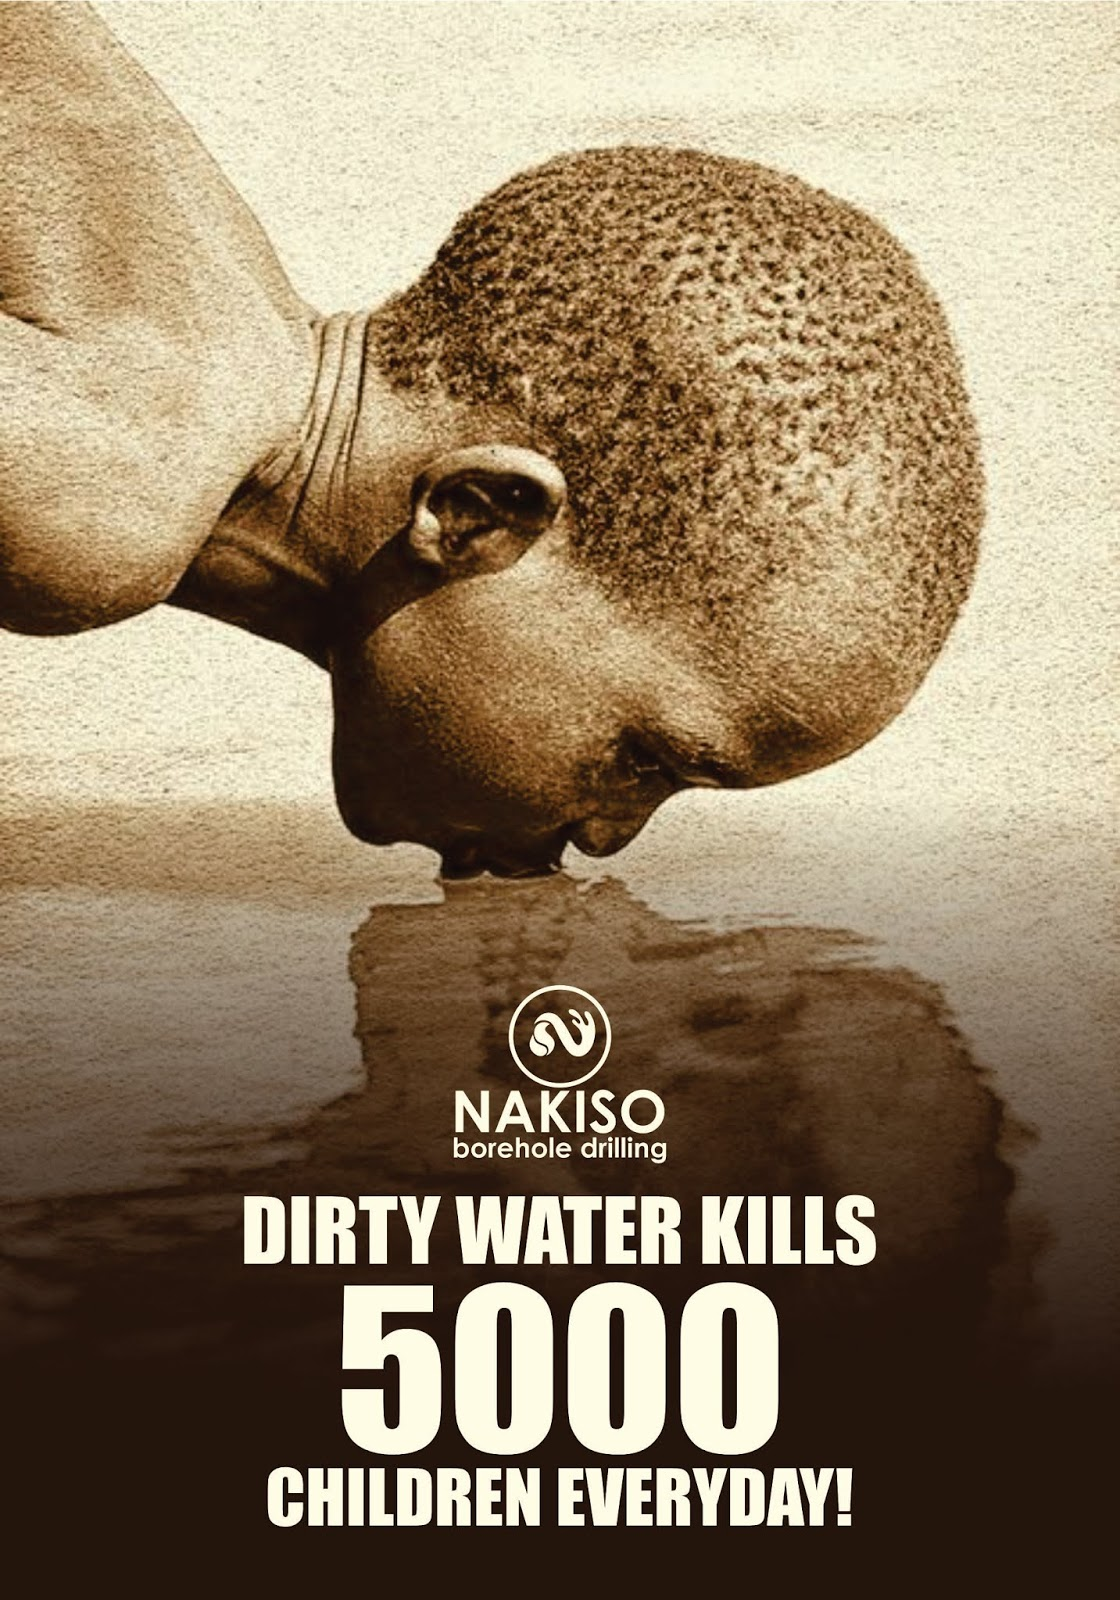 Dirty Water and Poor Sanitation Lills Over 5000 Children Every Day!